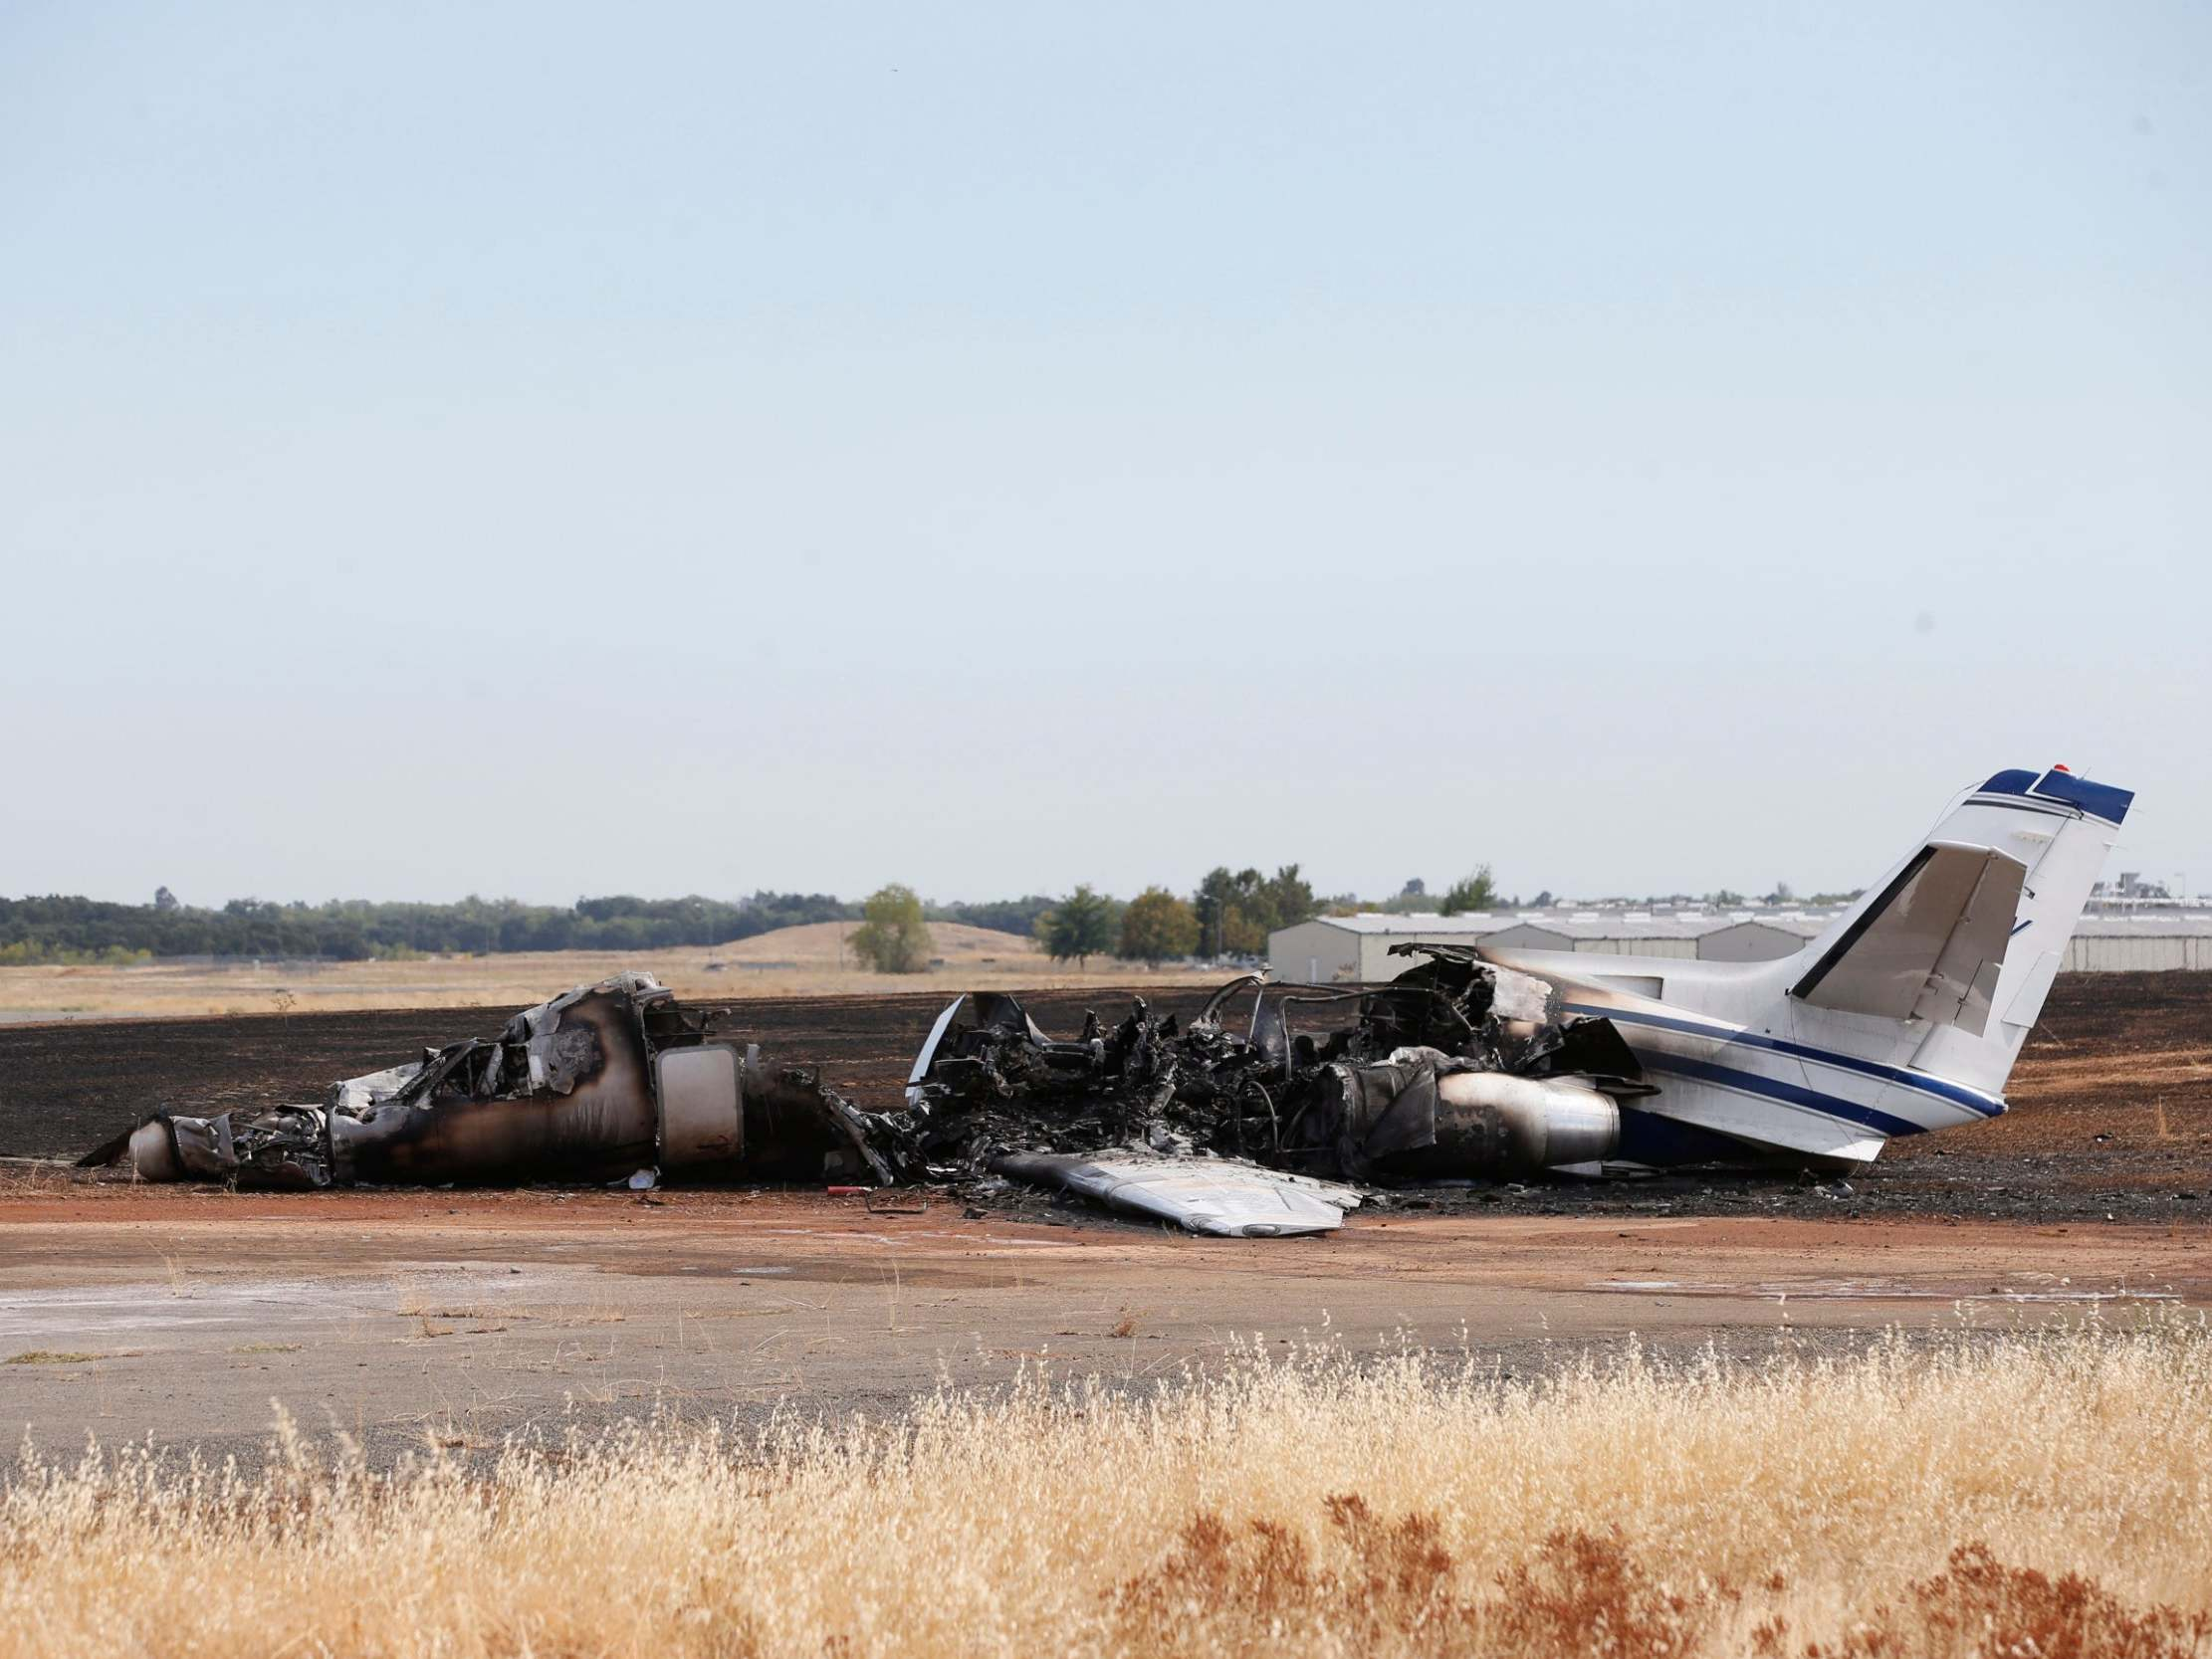 Plane bursts into flames after aborted take-off at California airport